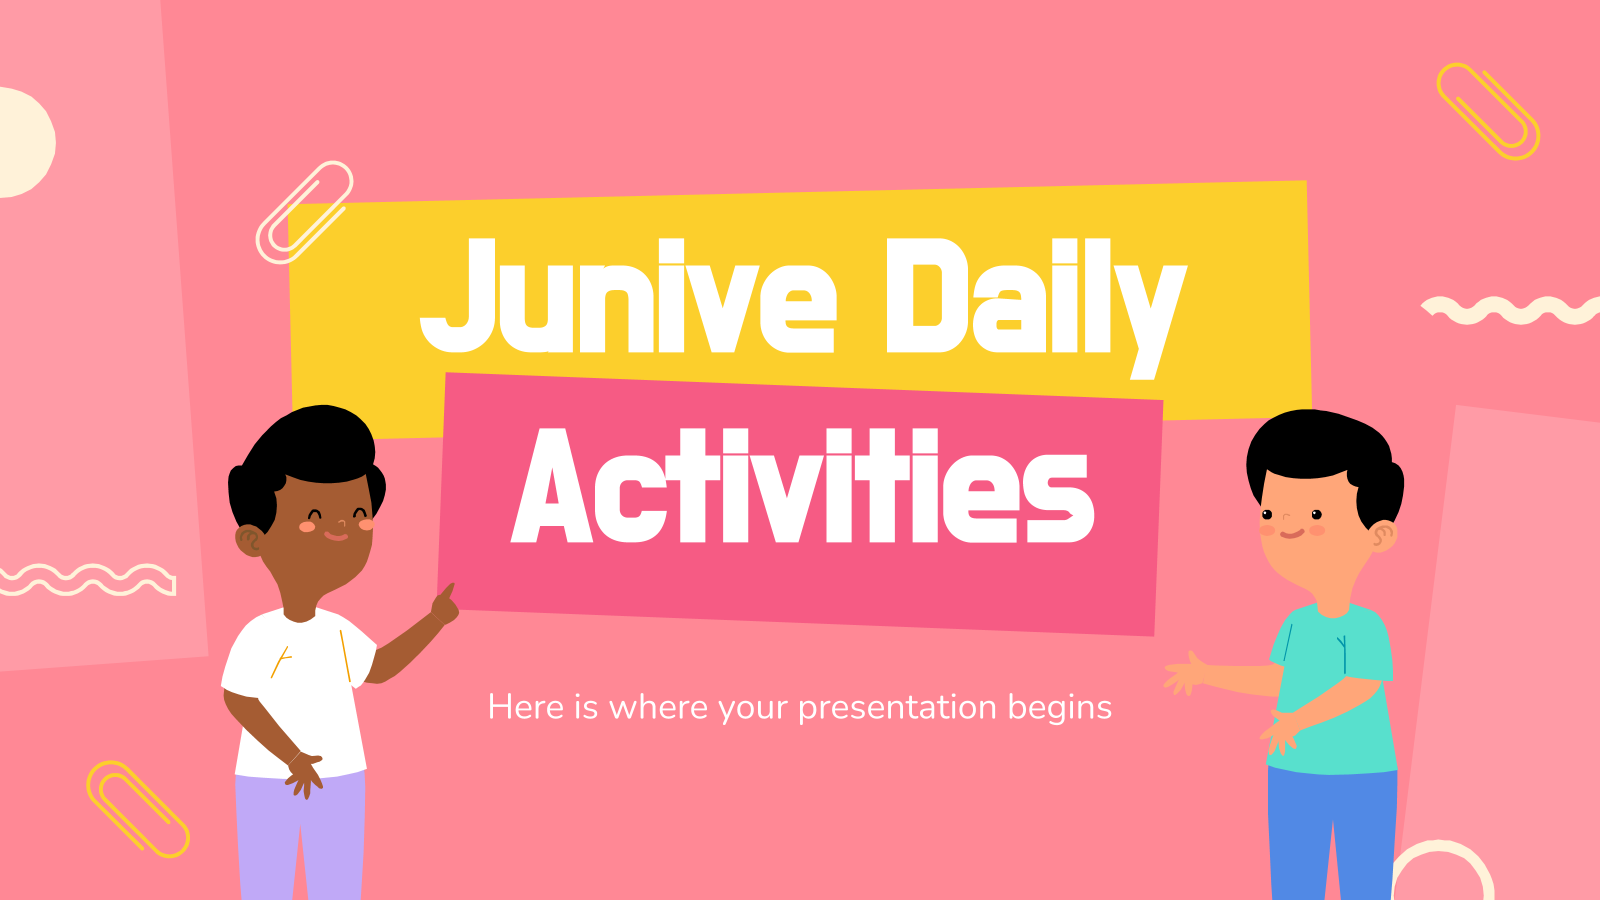 Junive Daily activities presentation template